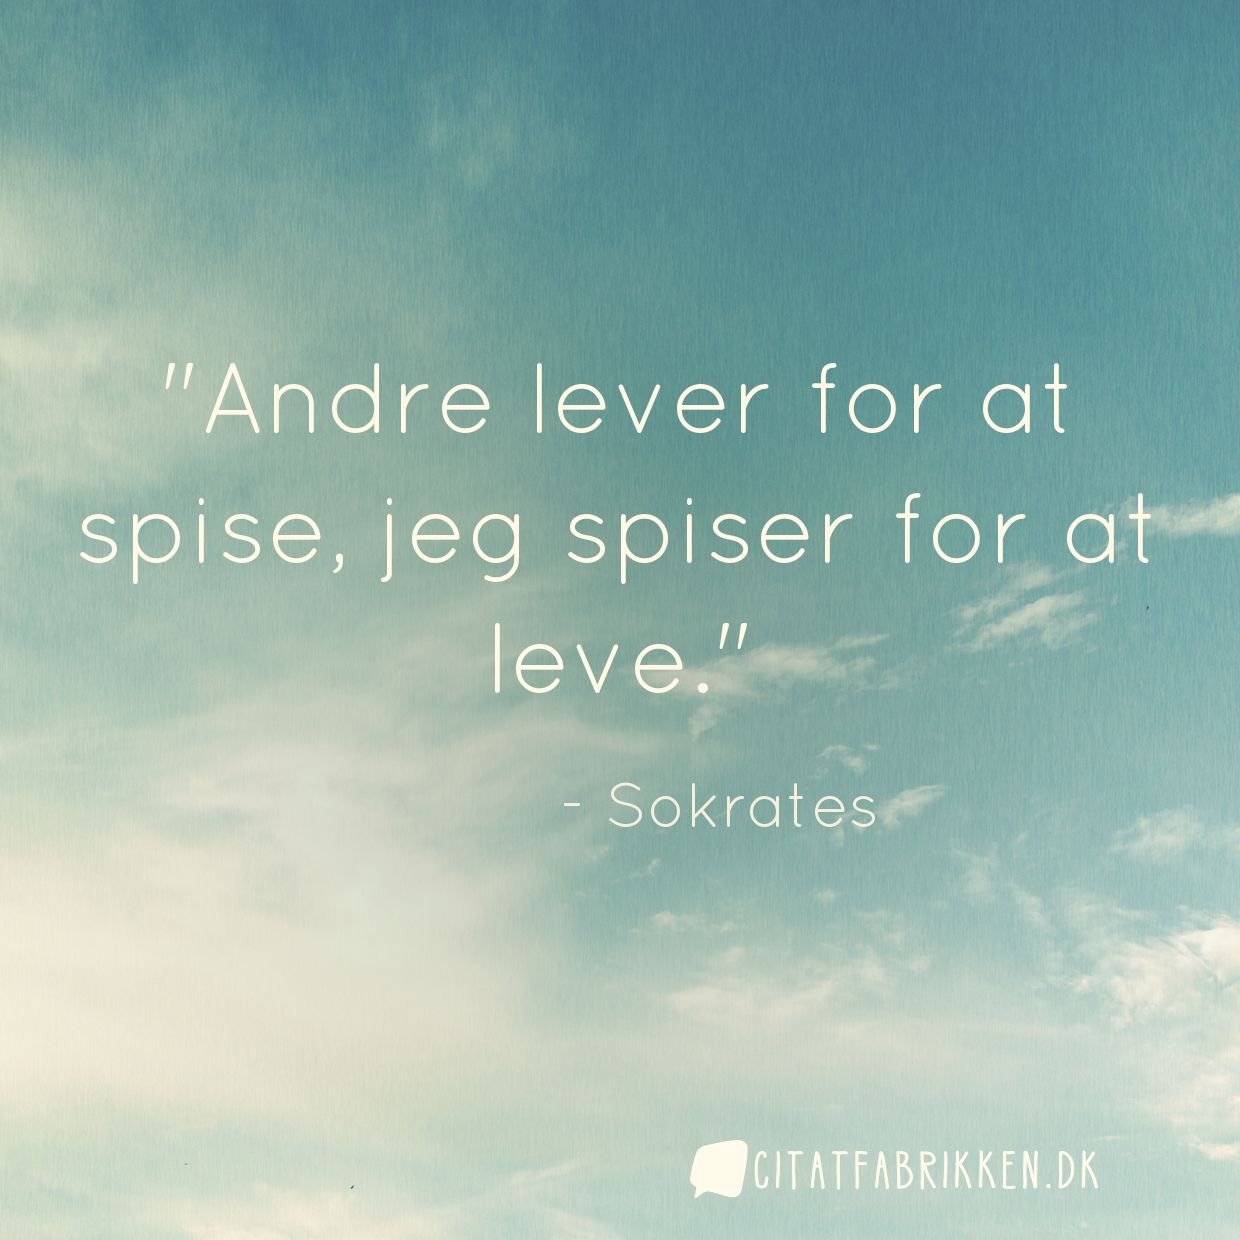 Andre lever for at spise, jeg spiser for at leve.